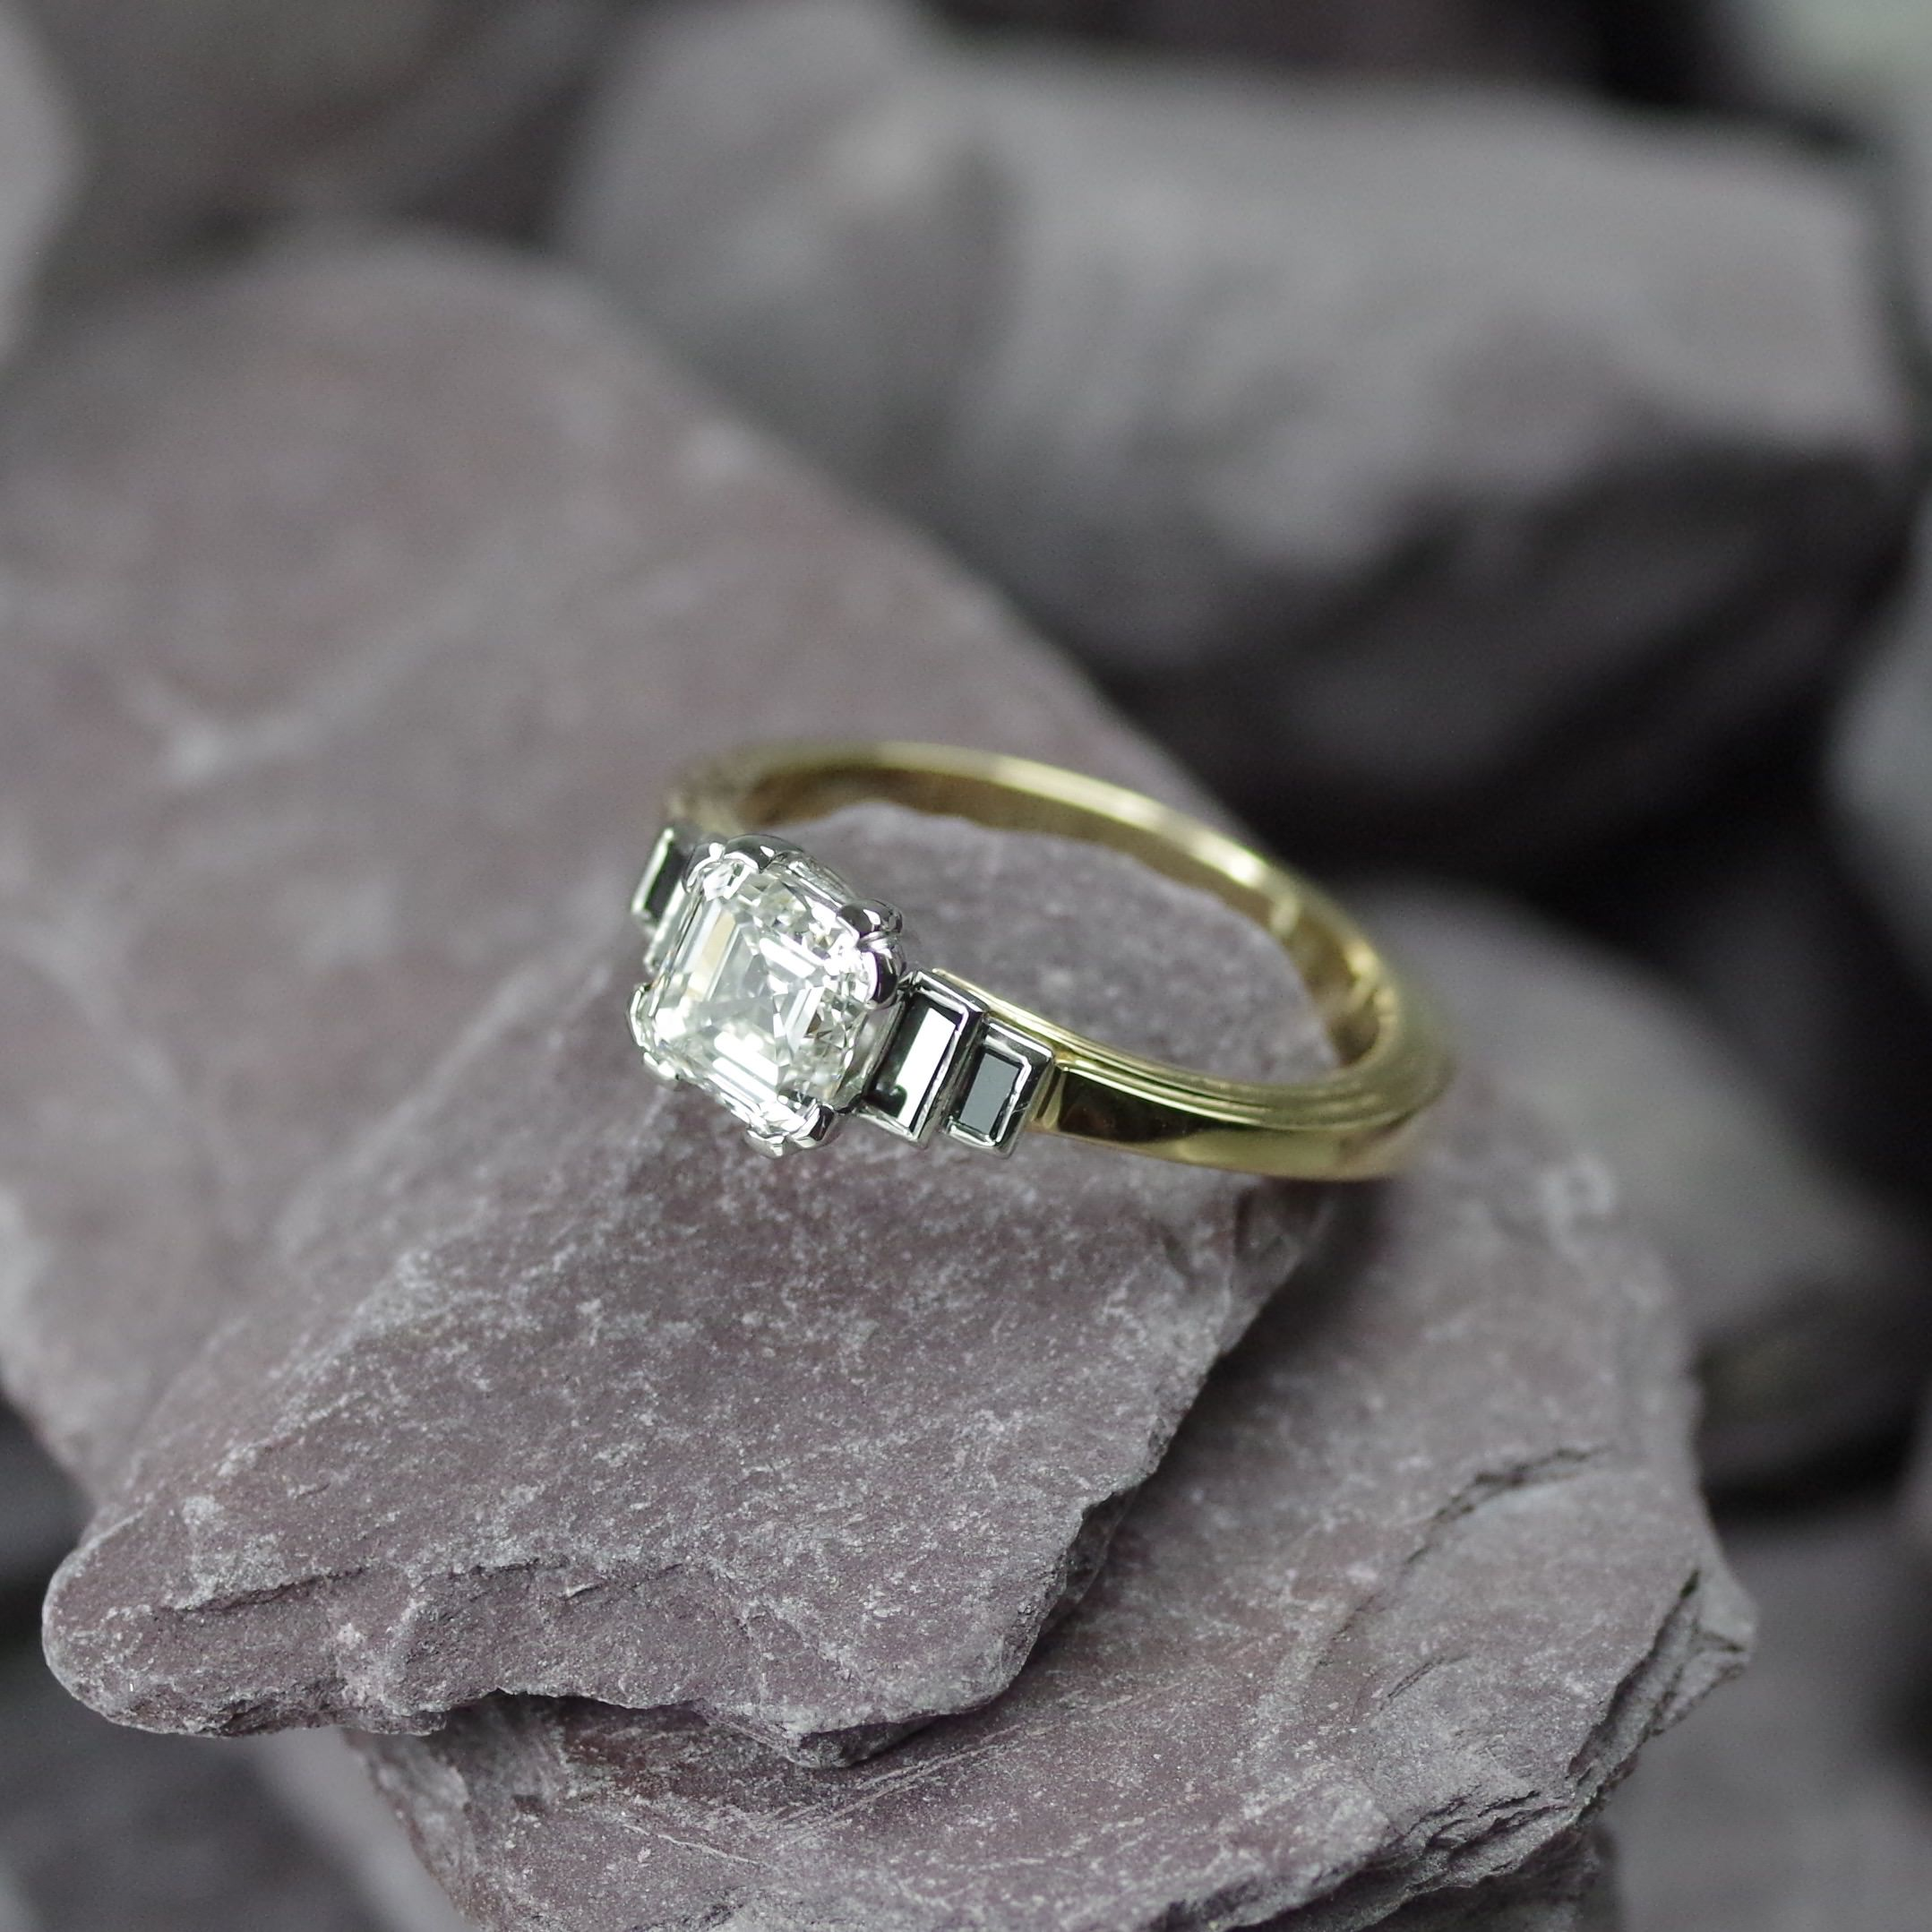 18ct Gold and Platinum ring set with one 1.08ct Assher cut Diamond & flanking black Diamond baguette's (ER011)